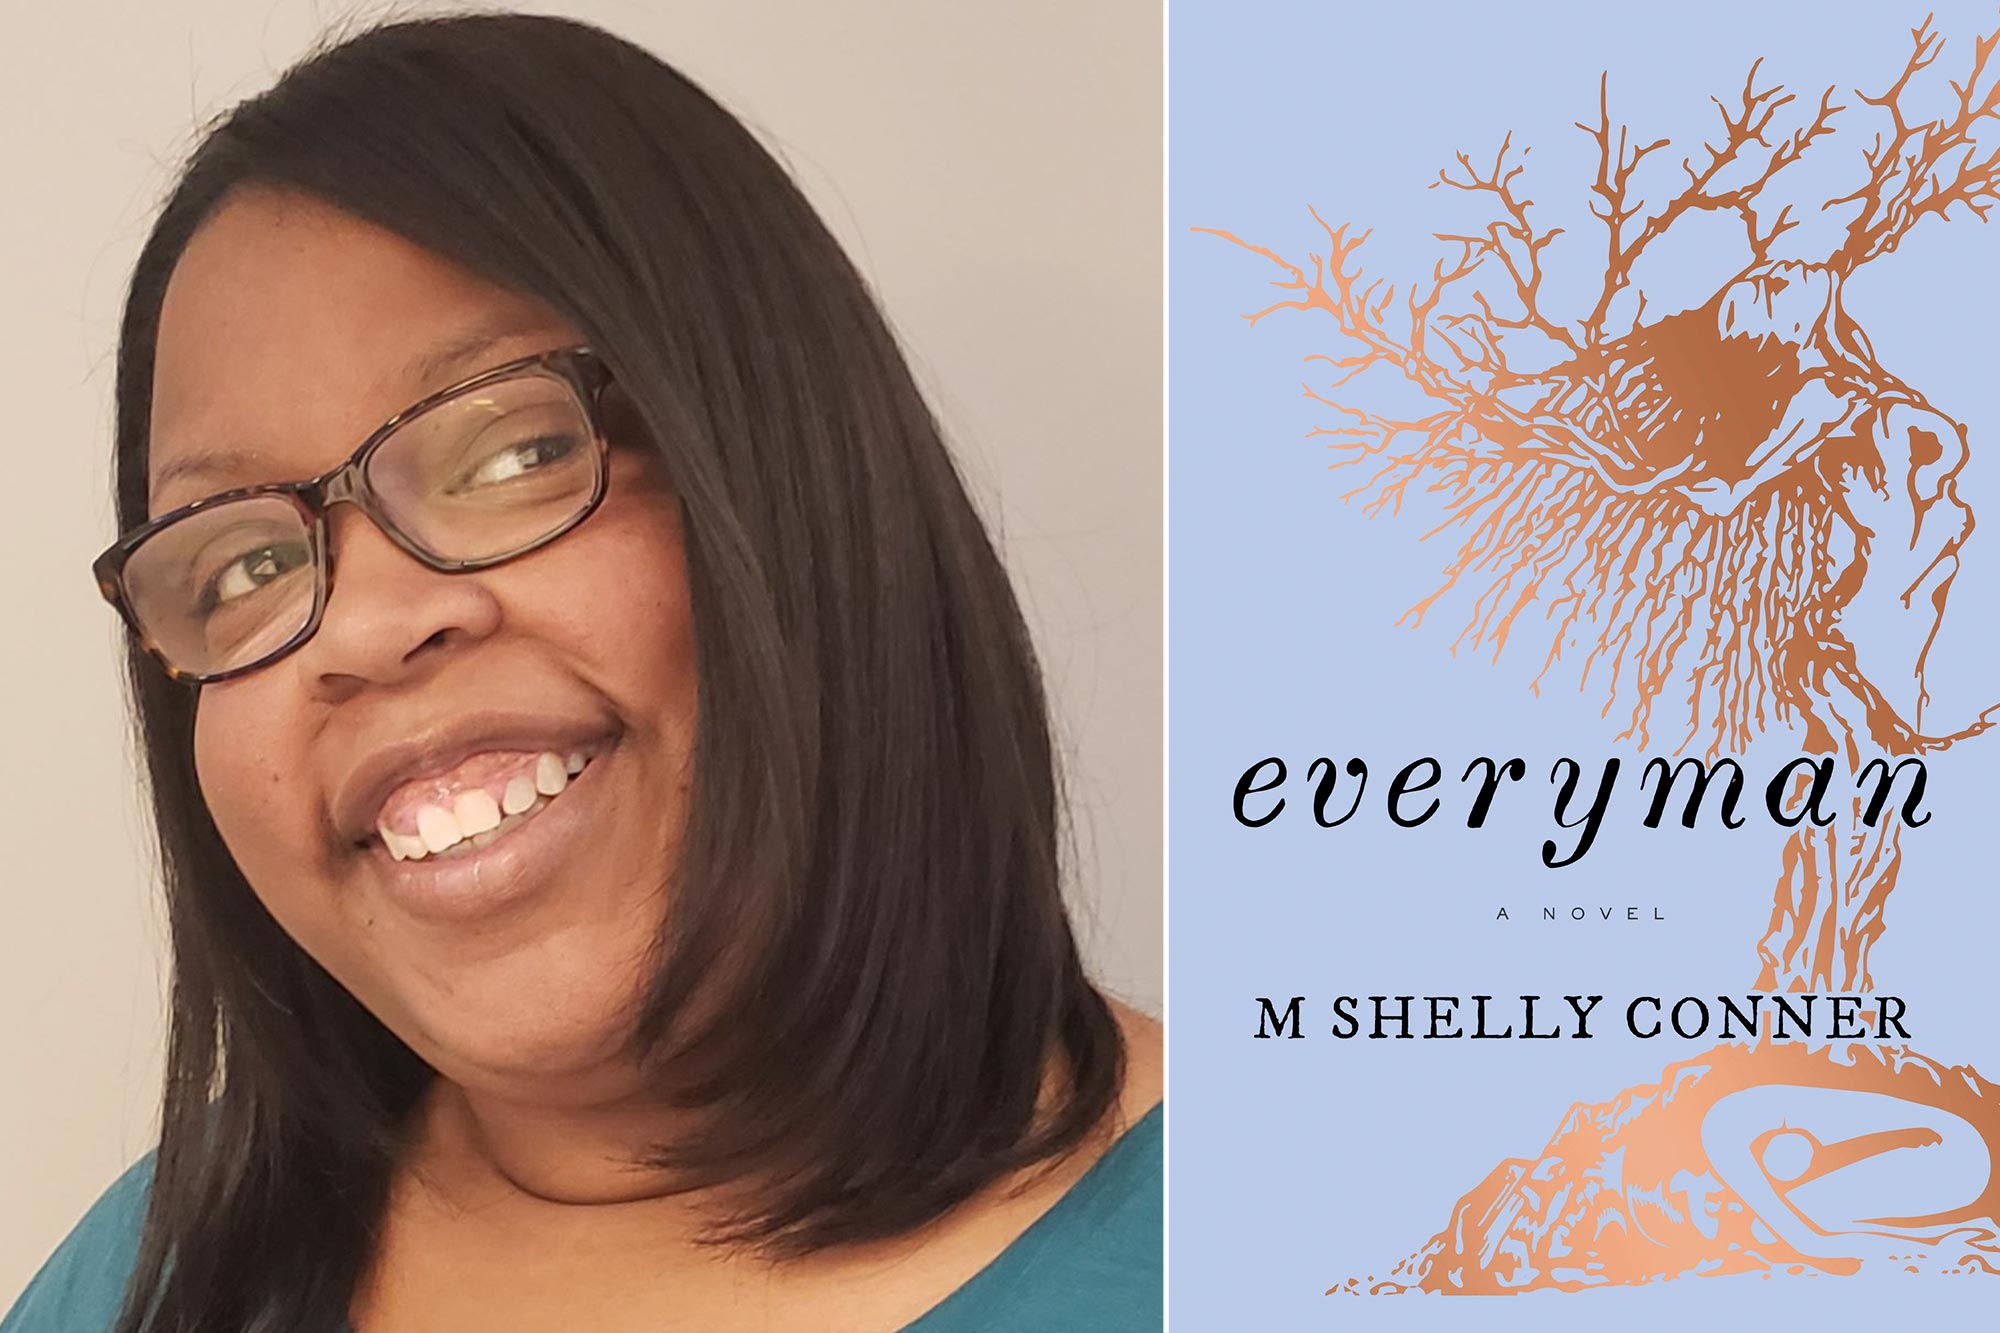 Catherine Adel West recommends Everyman by M Shelly Conner